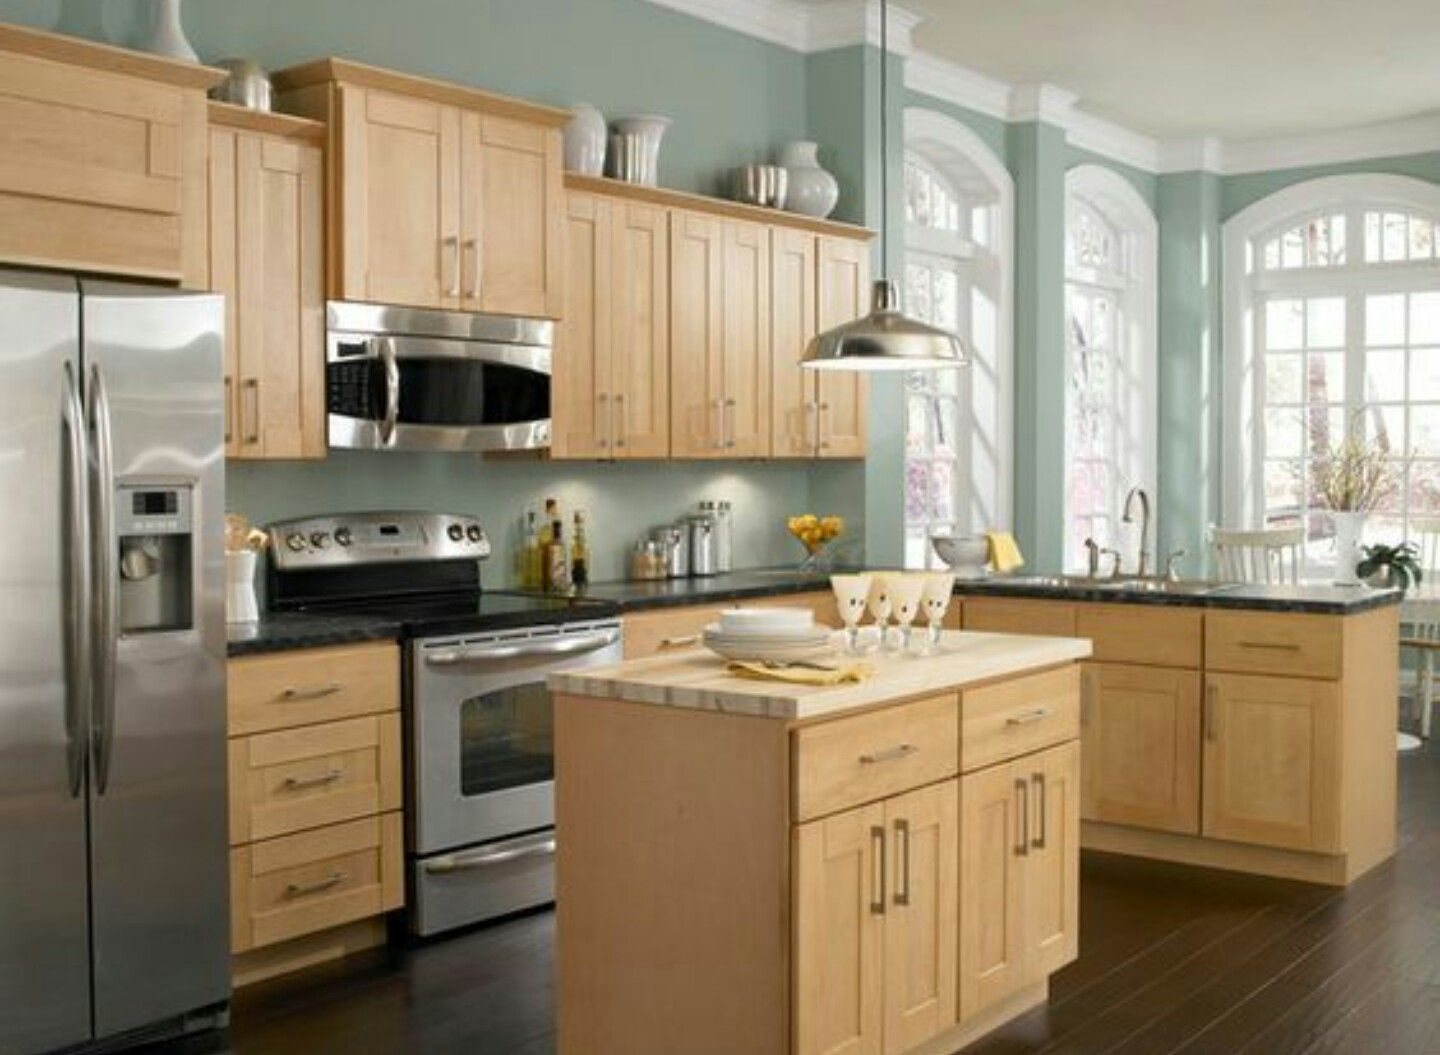 honey maple kitchen cabinets. Cabinet Door Style Best Kitchen Wall Colors With Maple Cabinets What Paint Color Goes Light Oak Honey S